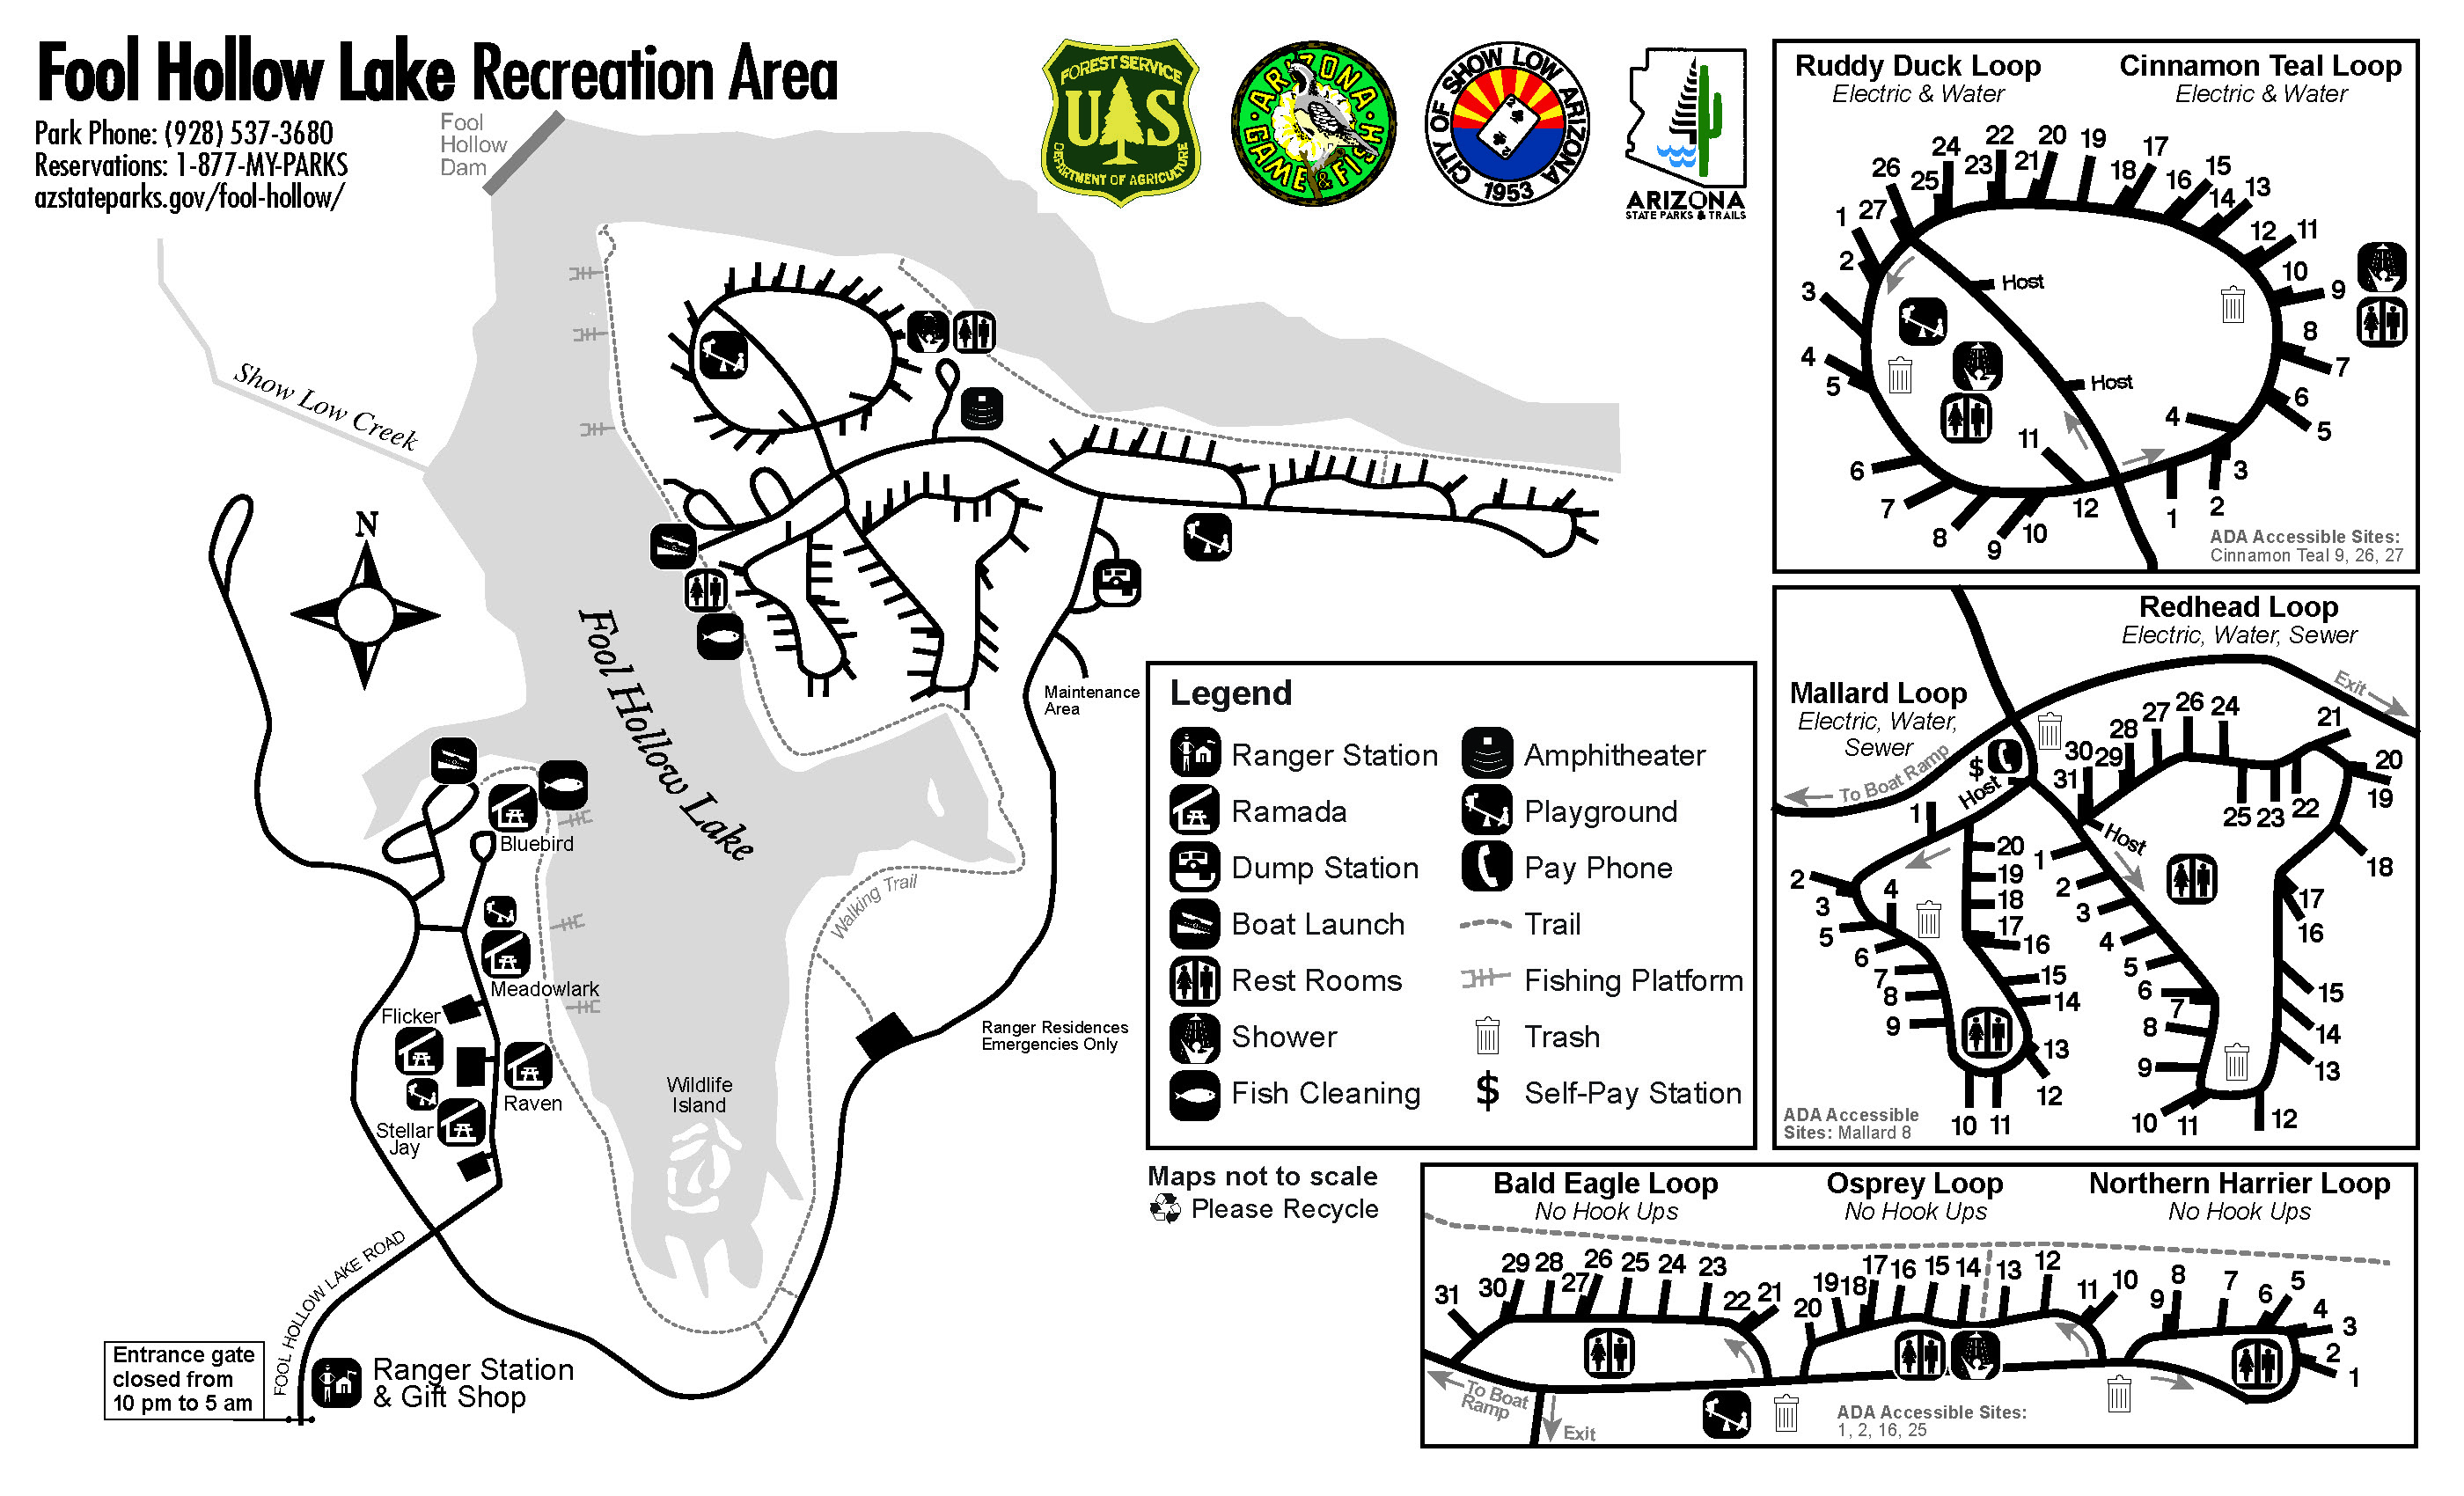 Fool Hollow Lake Park Map